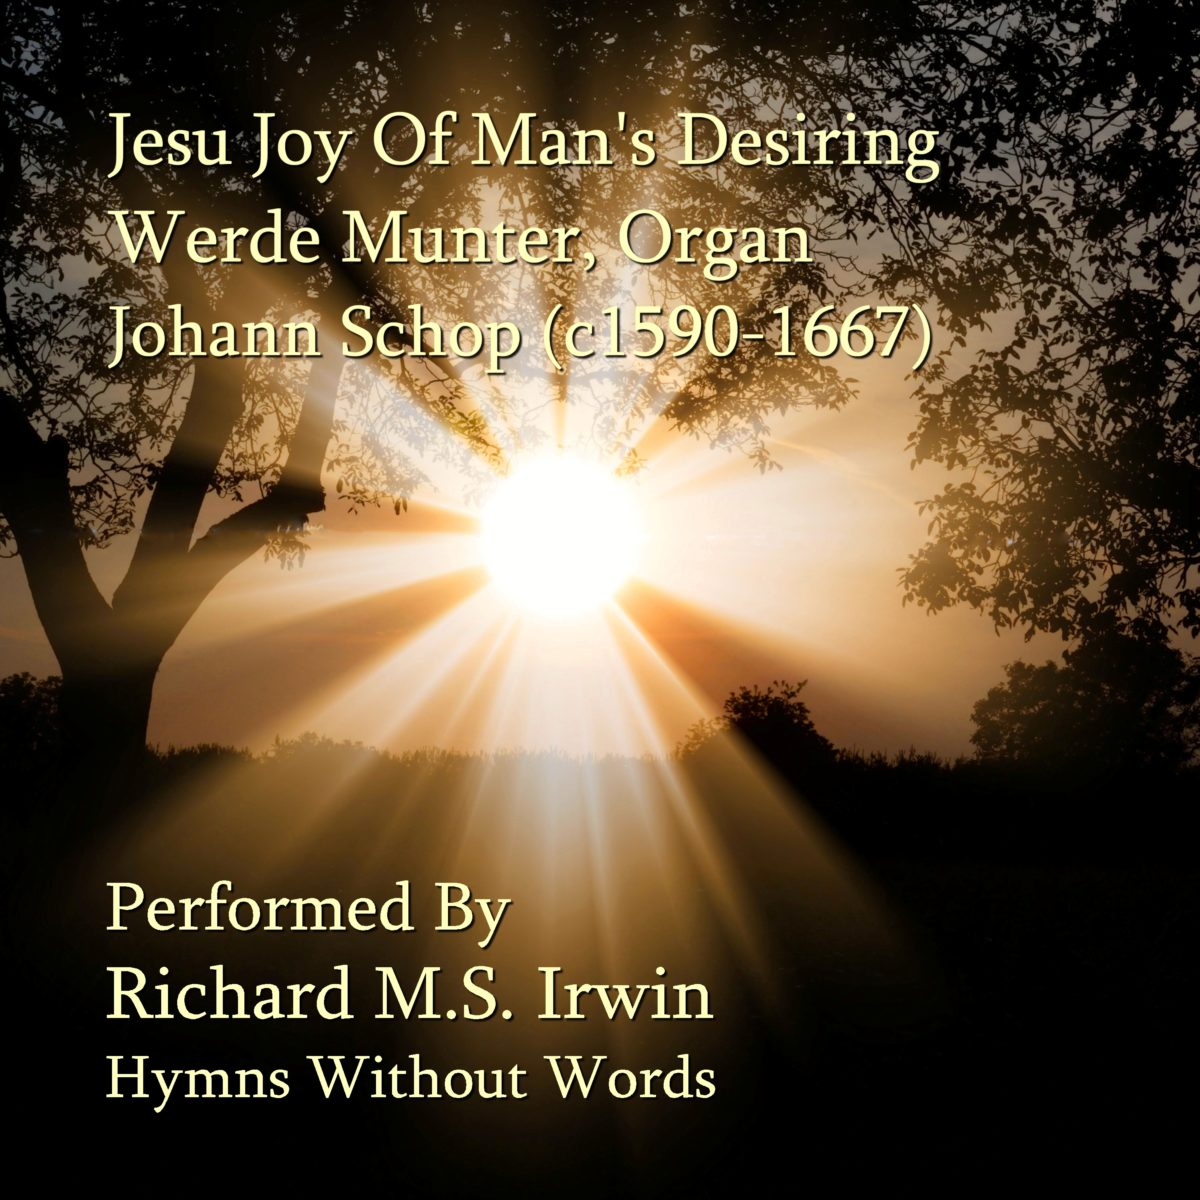 Jesus Joy Of Our Desiring (Werde Munter, Organ, 5 Verses)